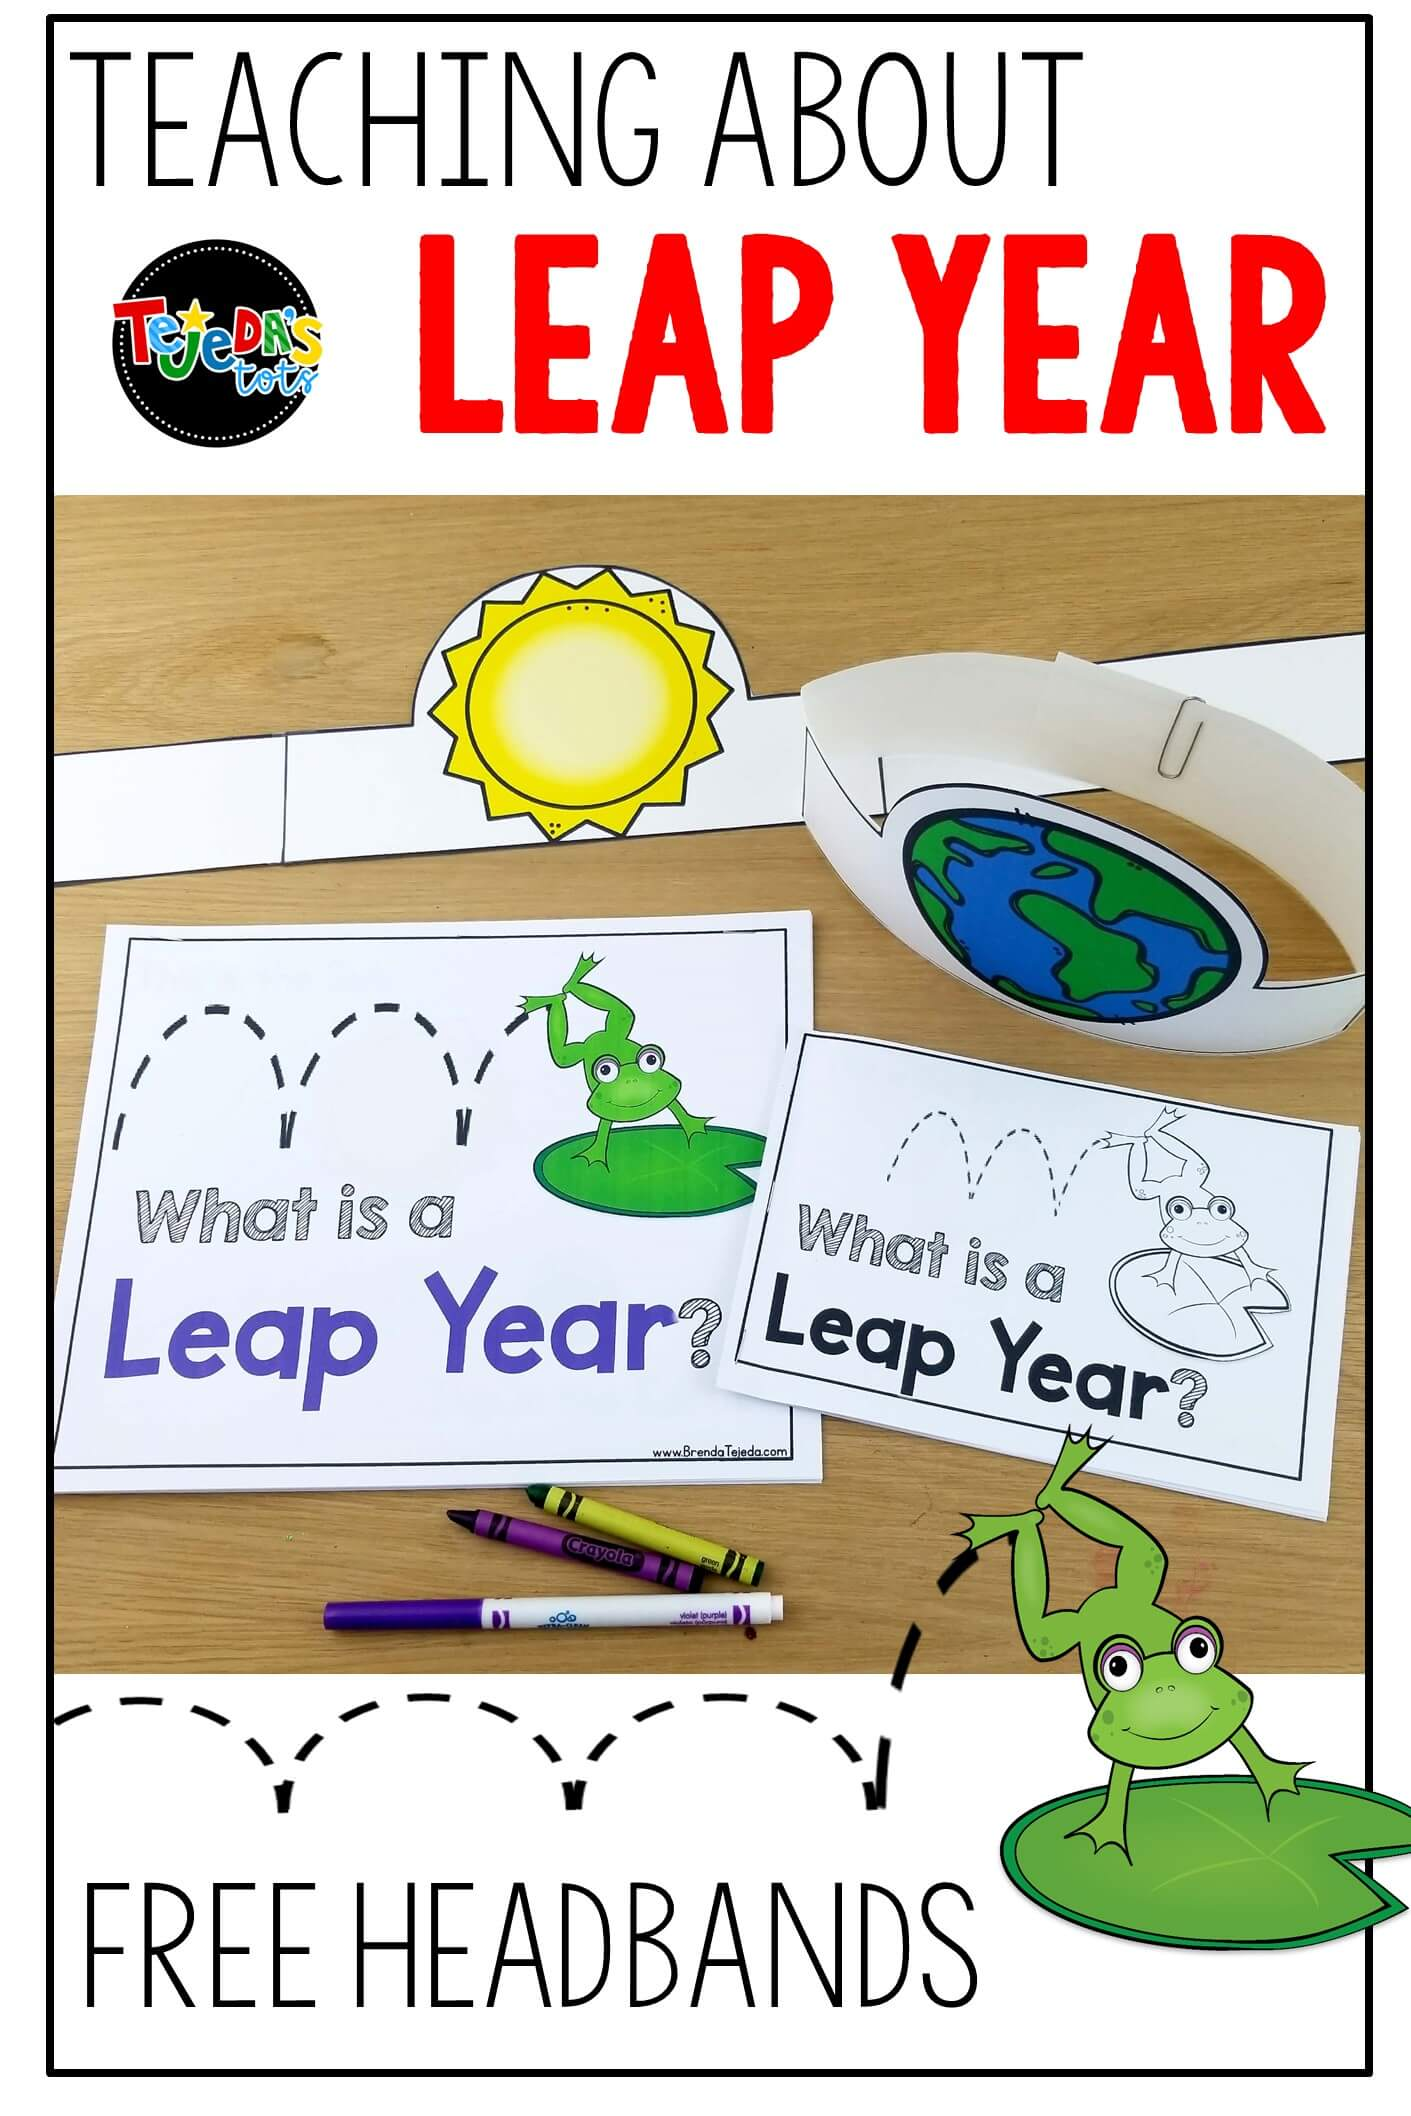 Teaching About Leap Year